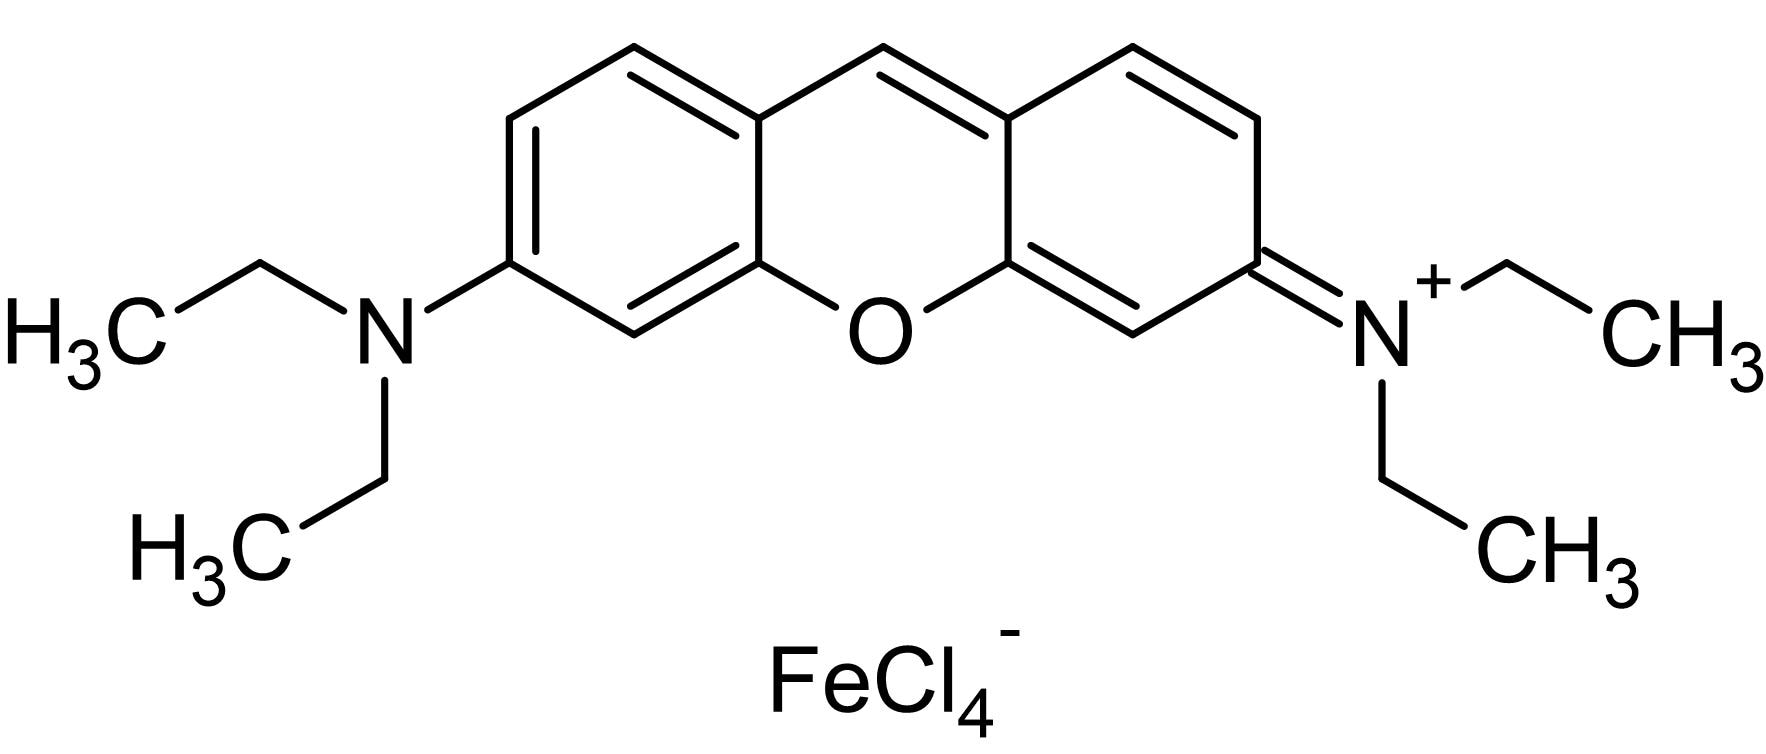 Chemical Structure - Pyronin B, Cationic dye (ab146261)